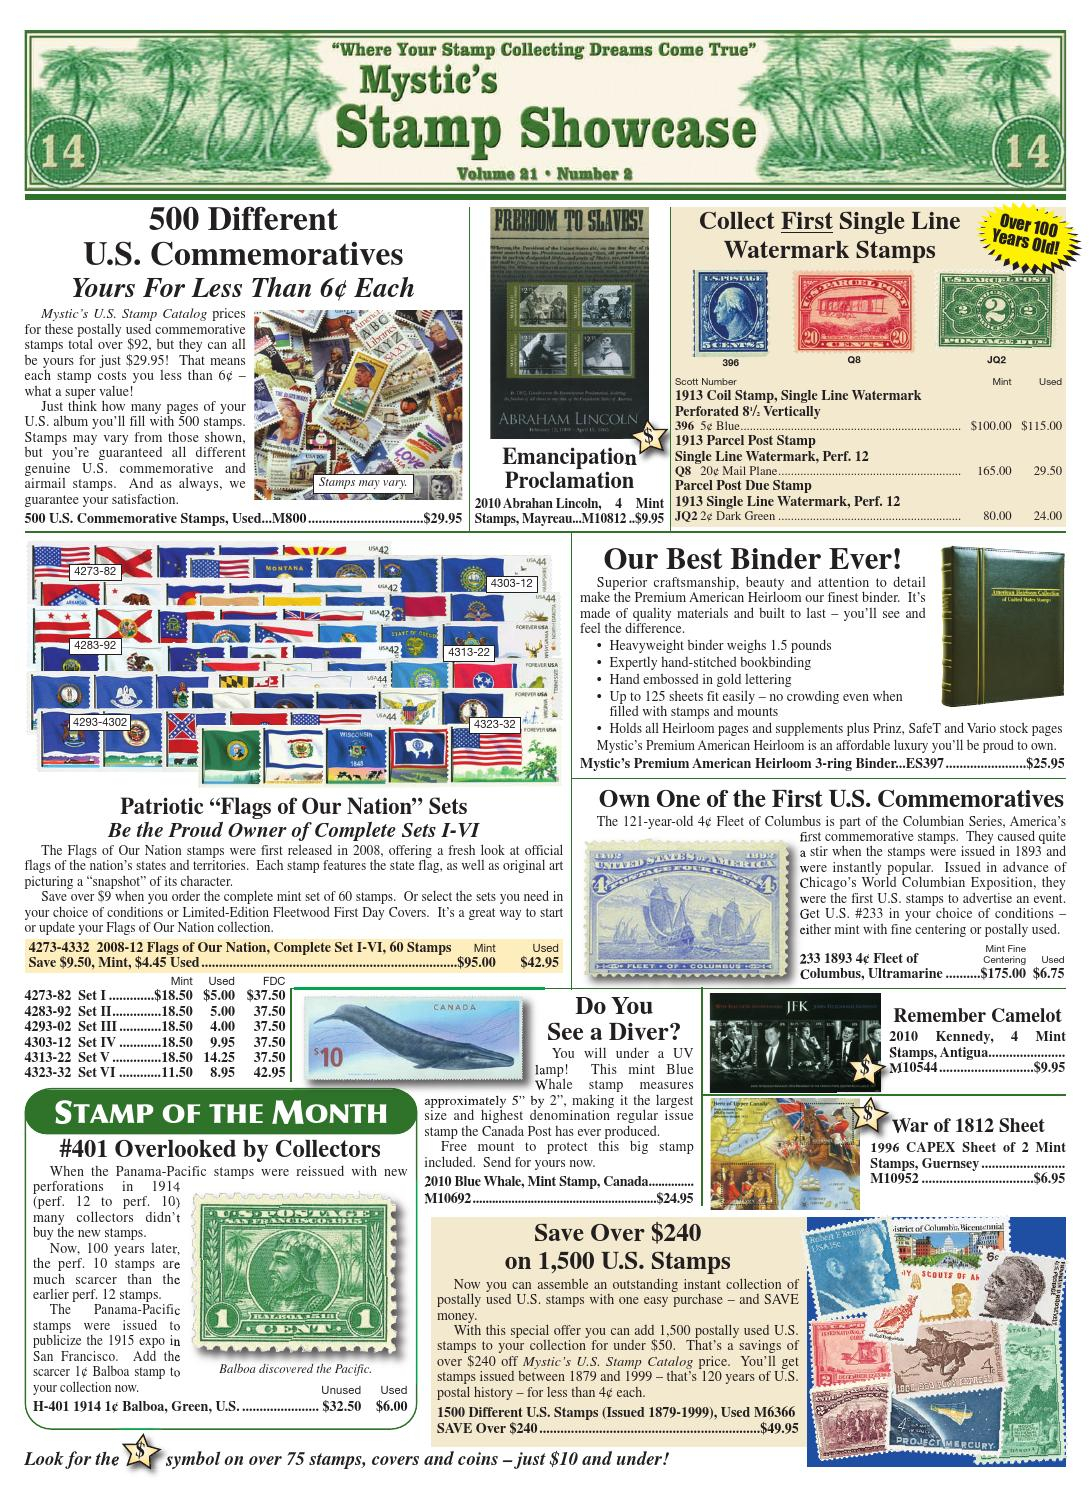 2014 March Showcasemystic Stamp Company – Issuu In North Penn School District Calendar 2021 20